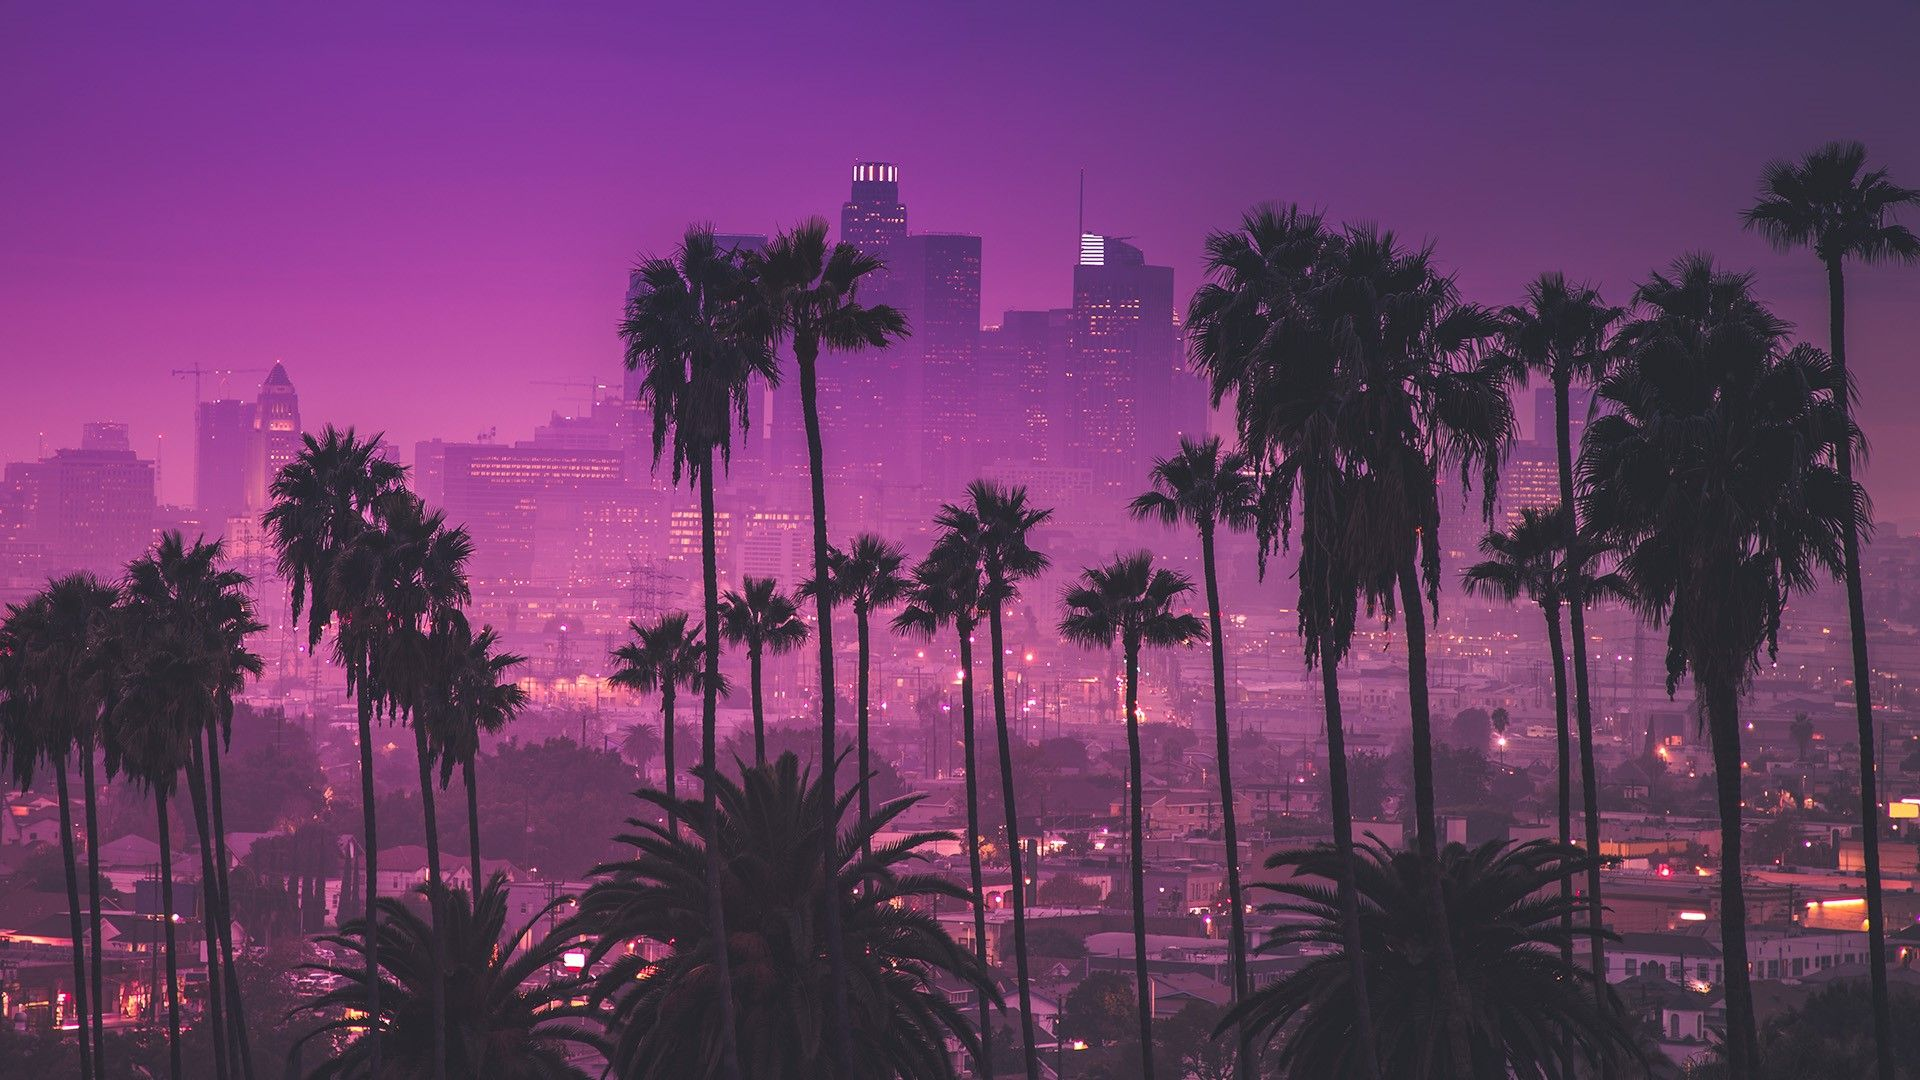 Los Angeles Sunset 1920x1080 In 2020 California Wallpaper Desktop Wallpaper Art Los Angeles Wallpaper